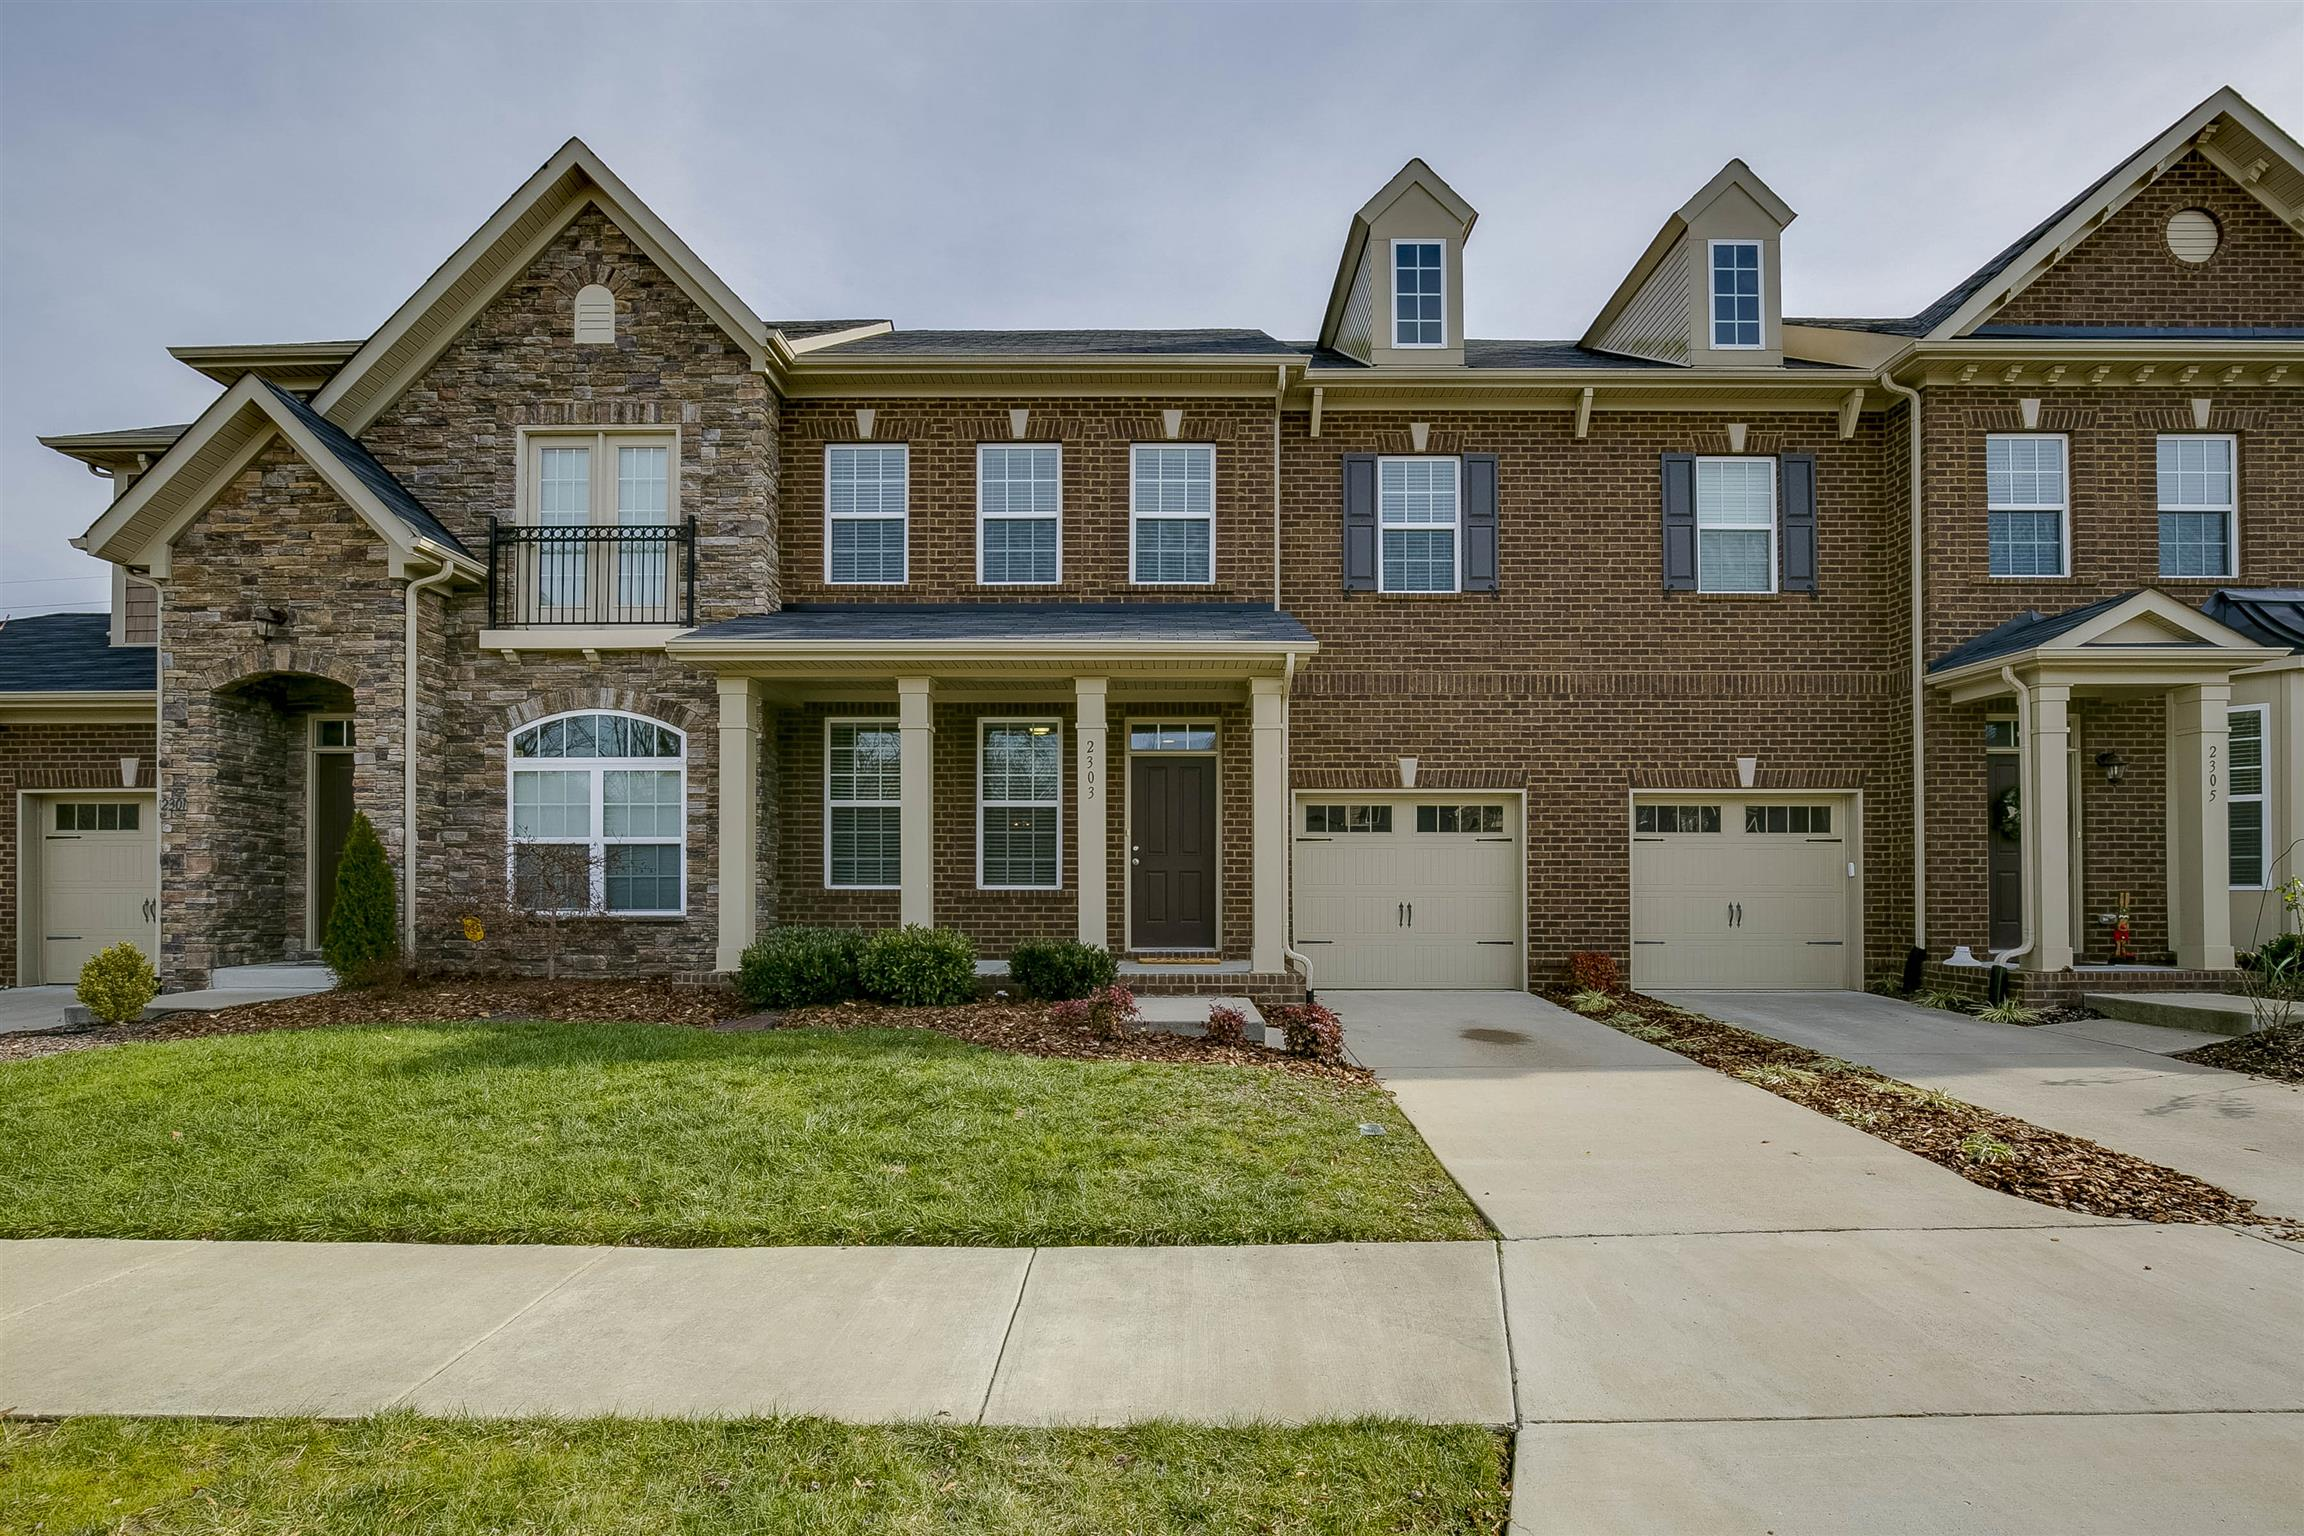 $300 000 to $400 000 Homes for Sale in Nashville TN